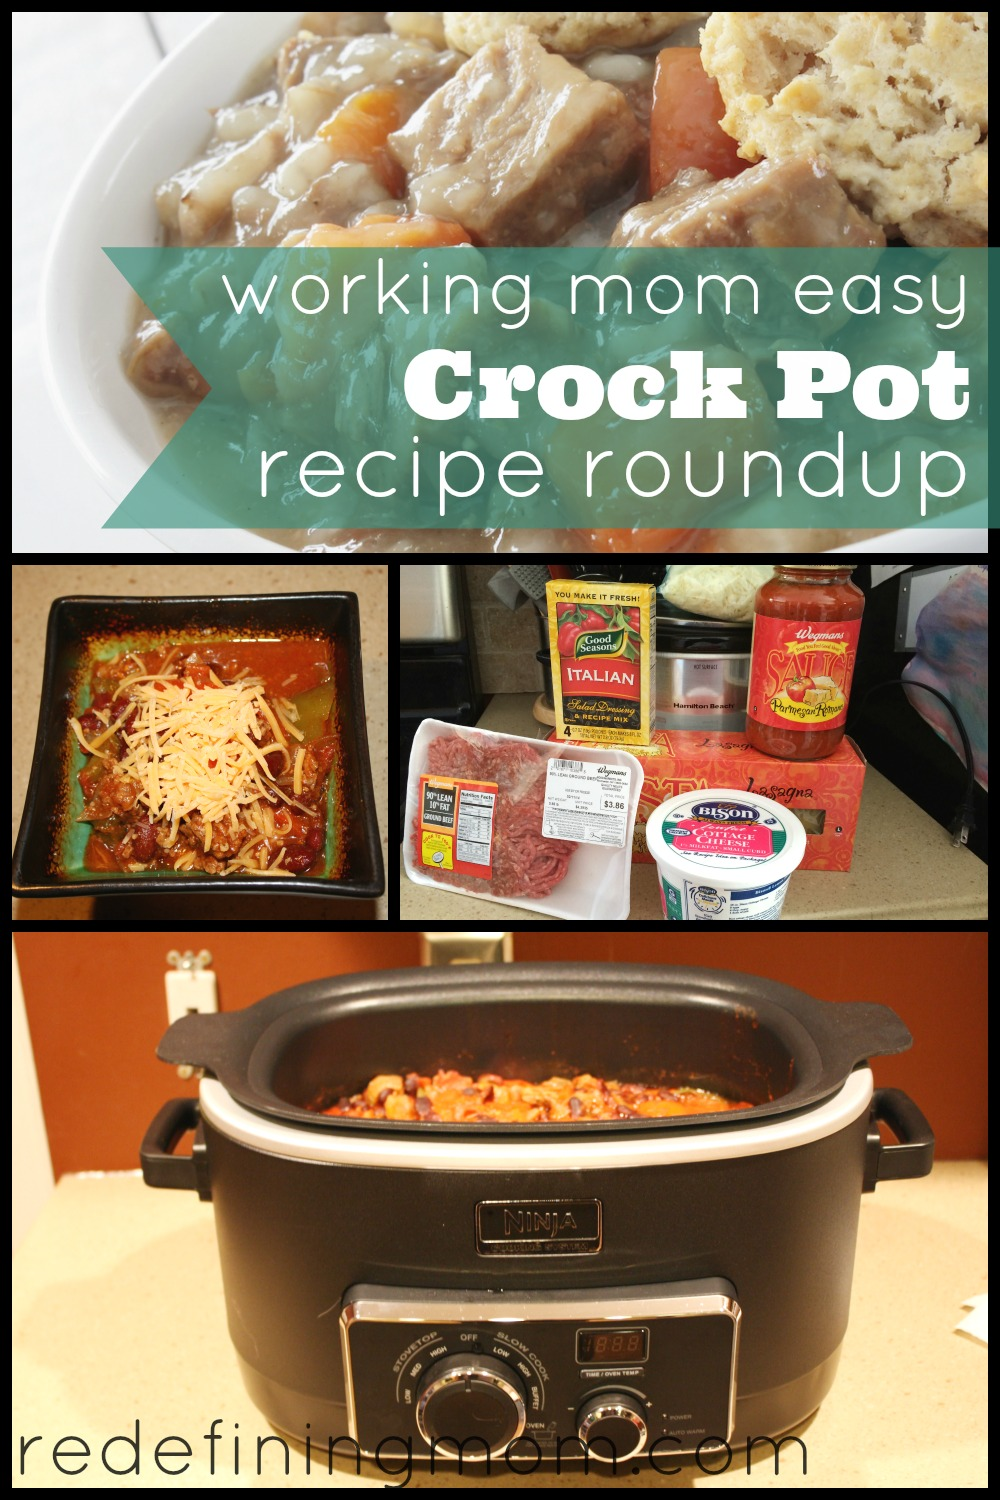 Find my favorite crock pot recipes in my working mom easy crock pot recipe roundup. Some of my favorites include beef stew, chili, and lasagna.